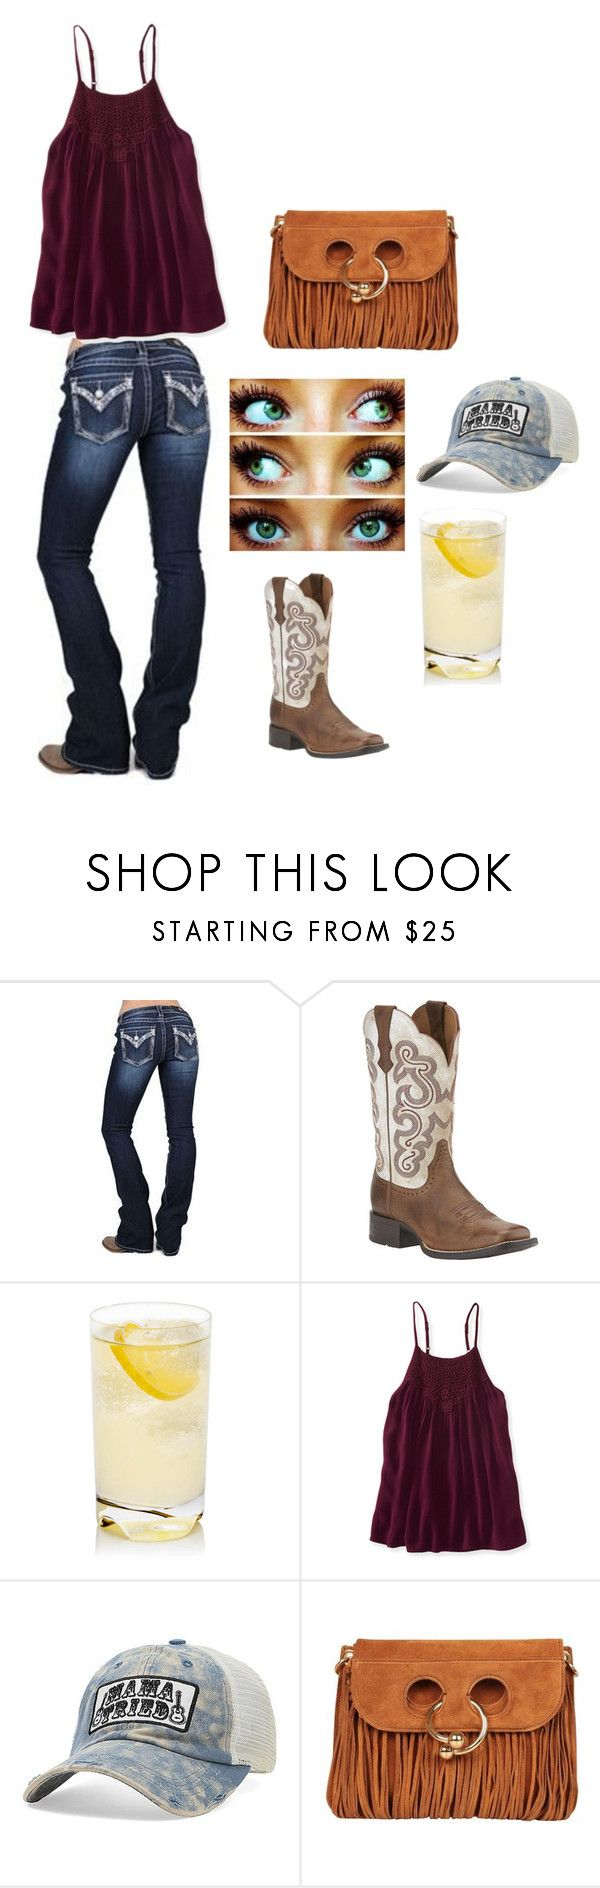 """Mama Tried"" by itsyagirlhar on Polyvore featuring Miss Me, Ariat, Aéropostale, Junk Gypsy and J.W. Anderson"